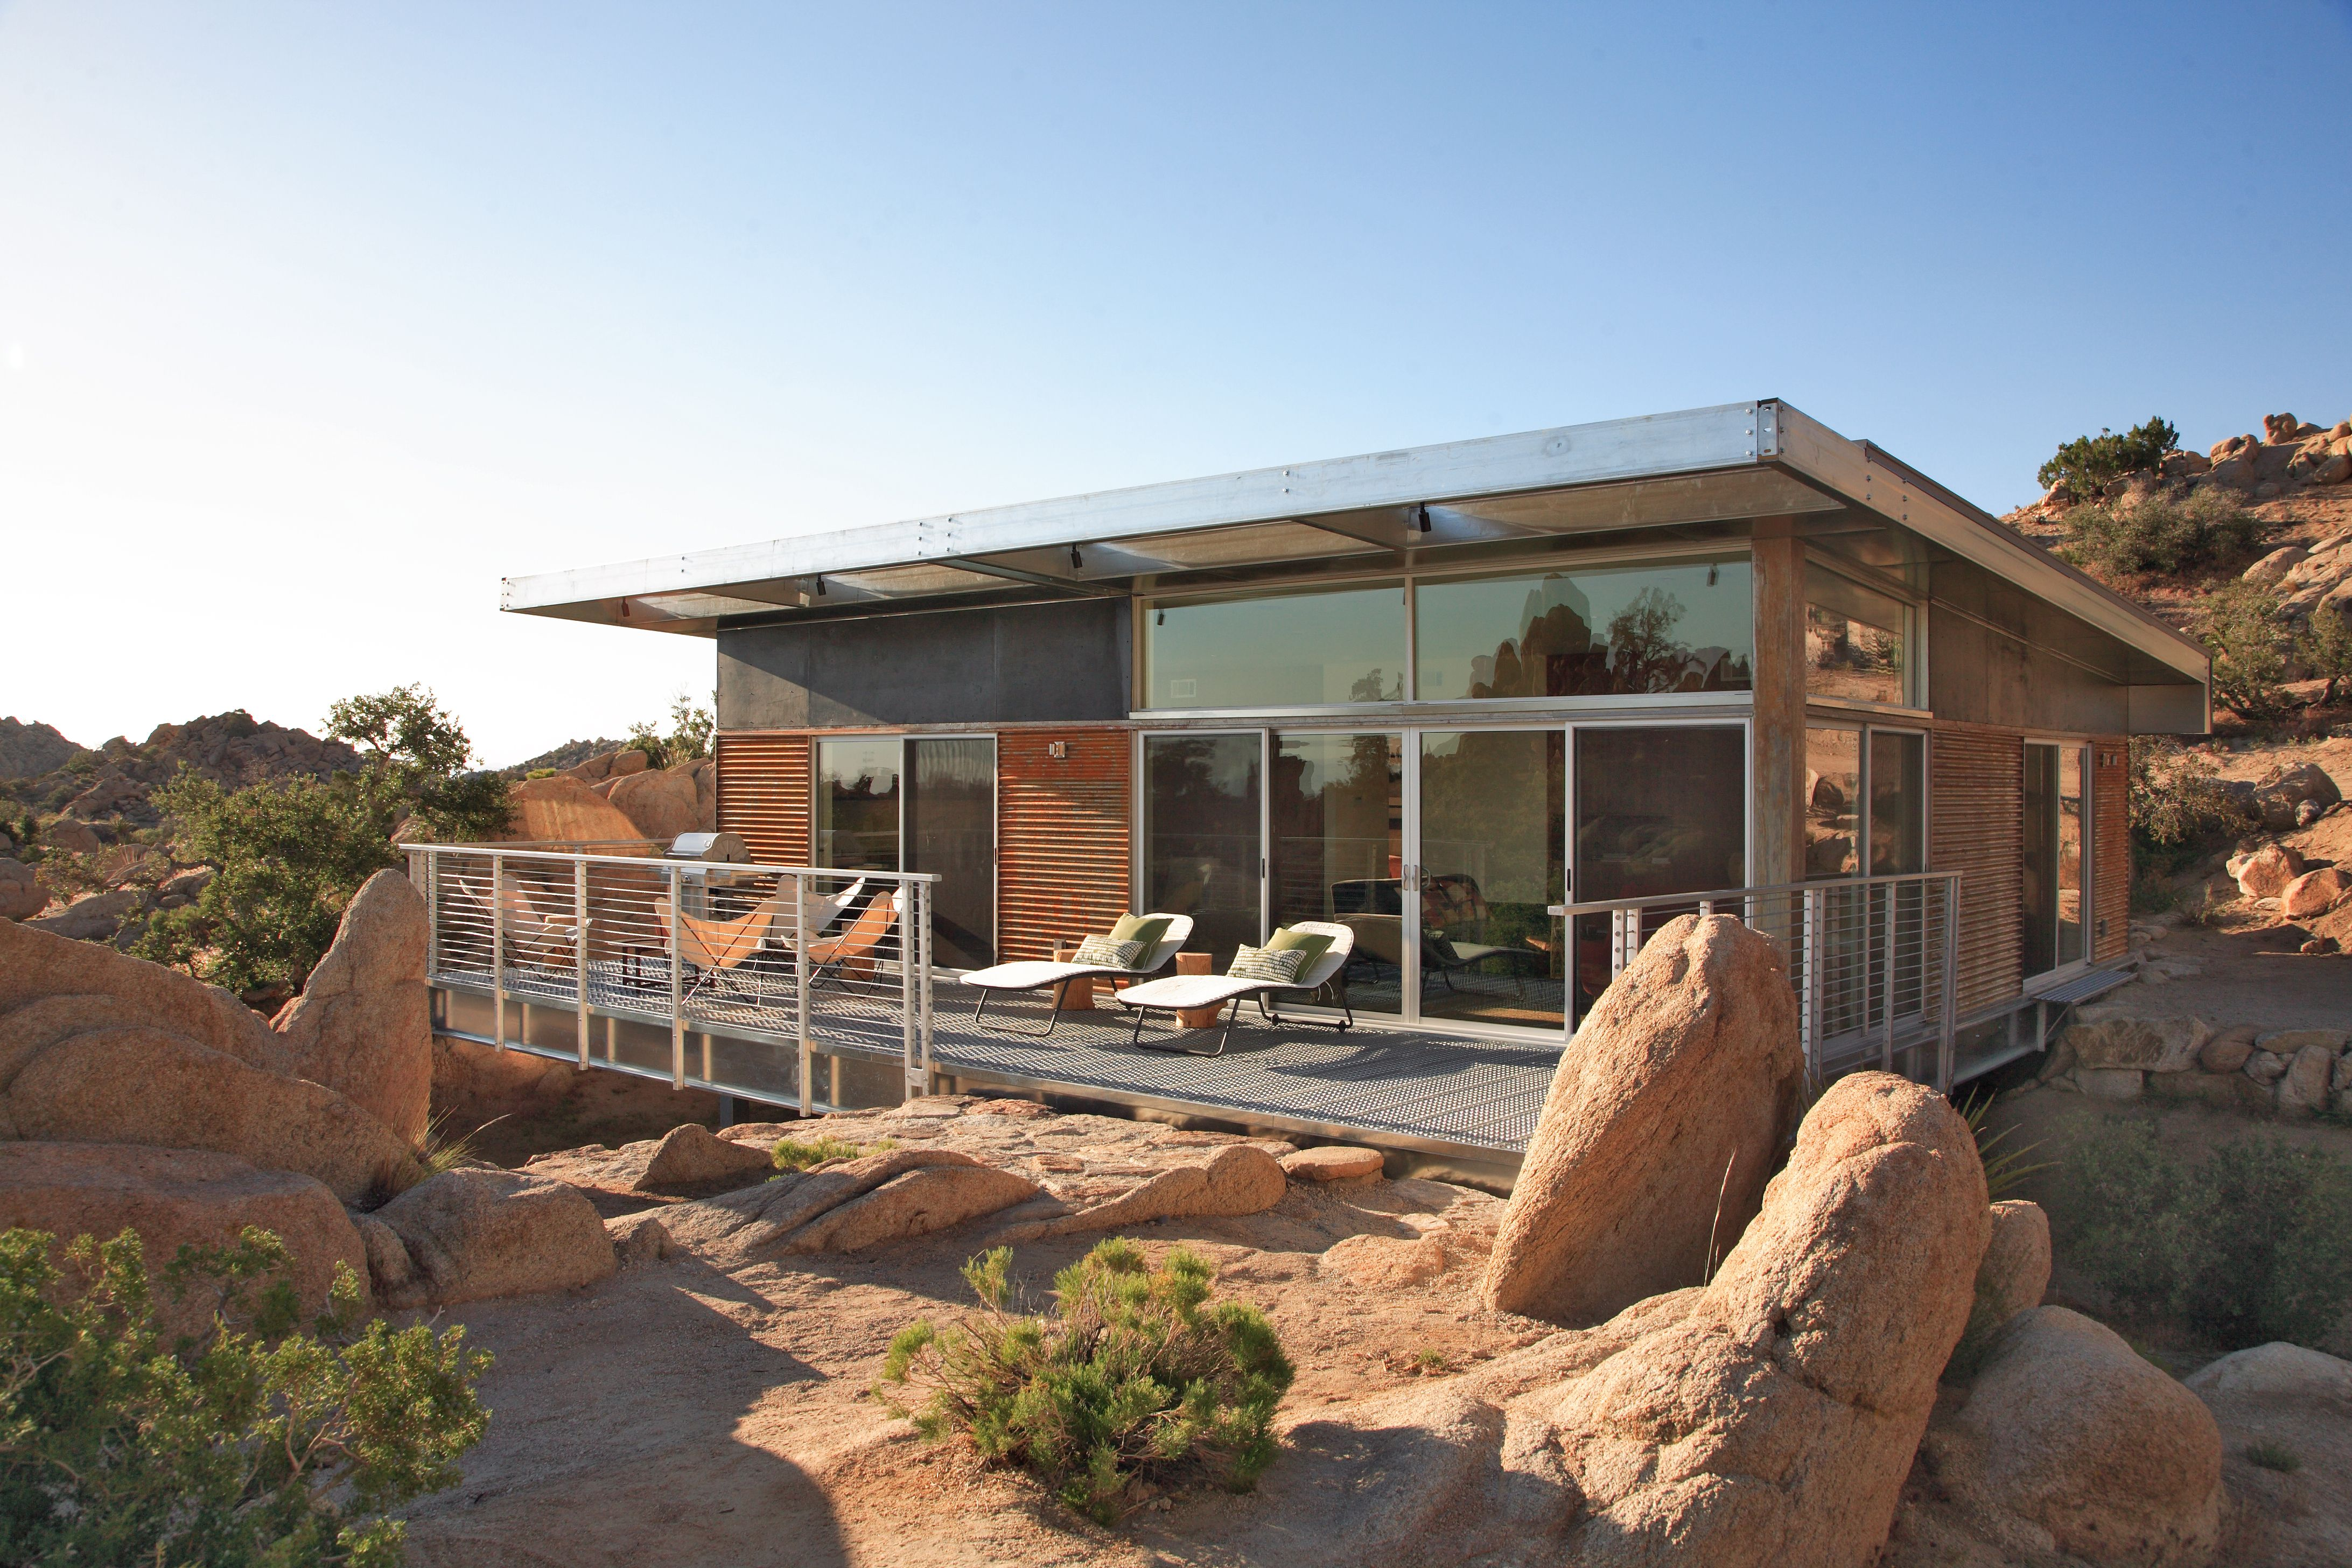 rock reach house in yucca valley california amazing sustainable